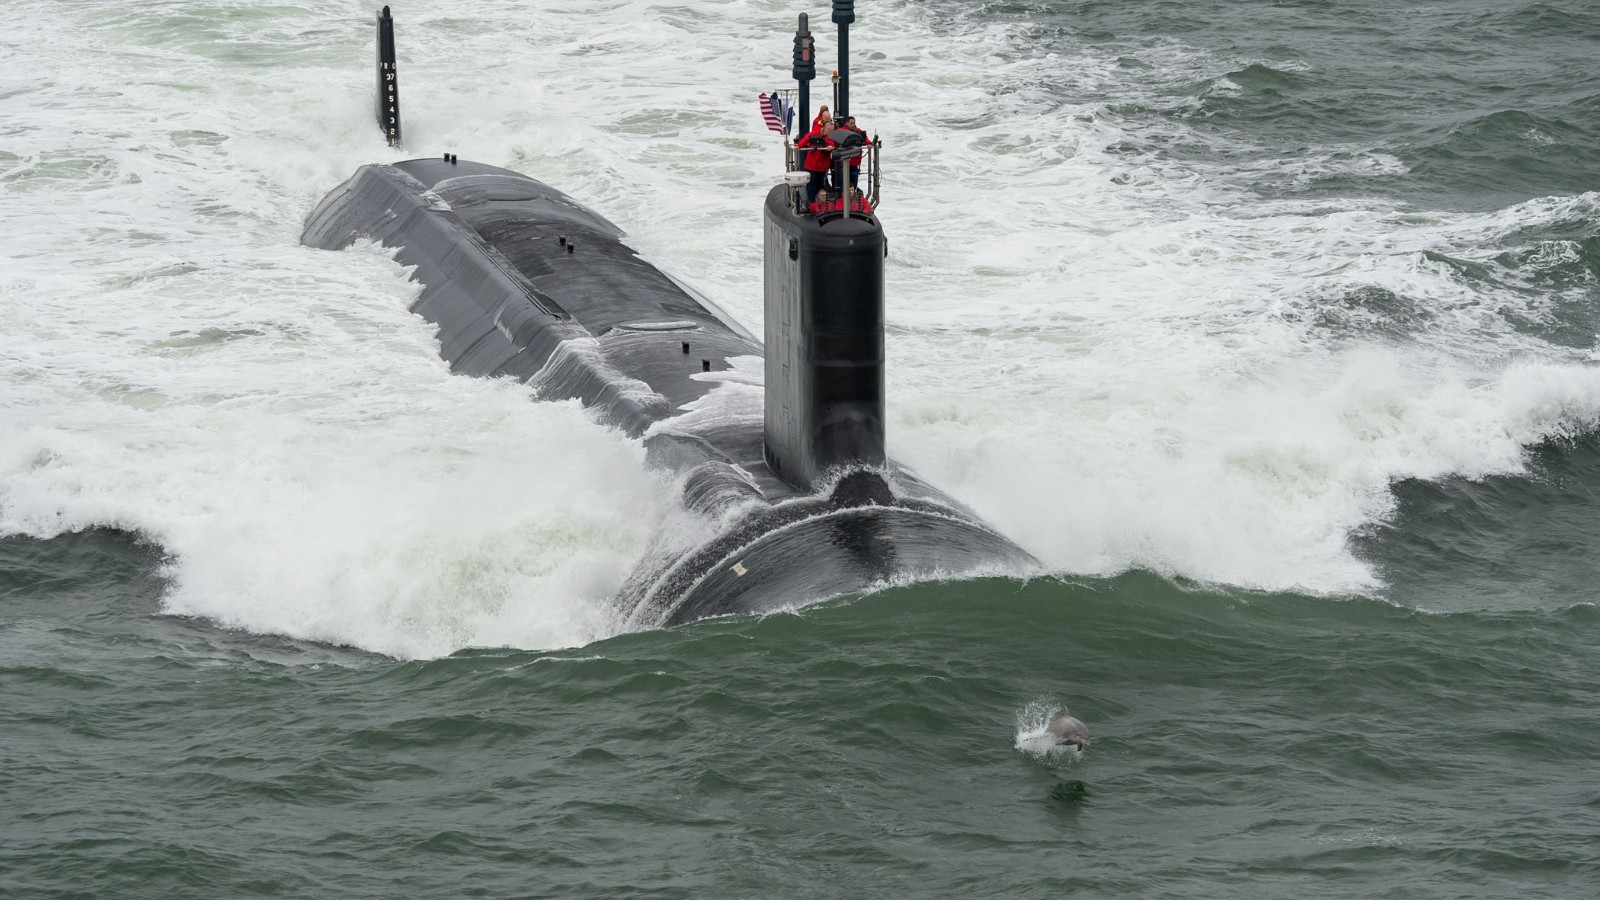 New Sub Navy S Most Lethal Warship Uss John Warner Cnnpolitics